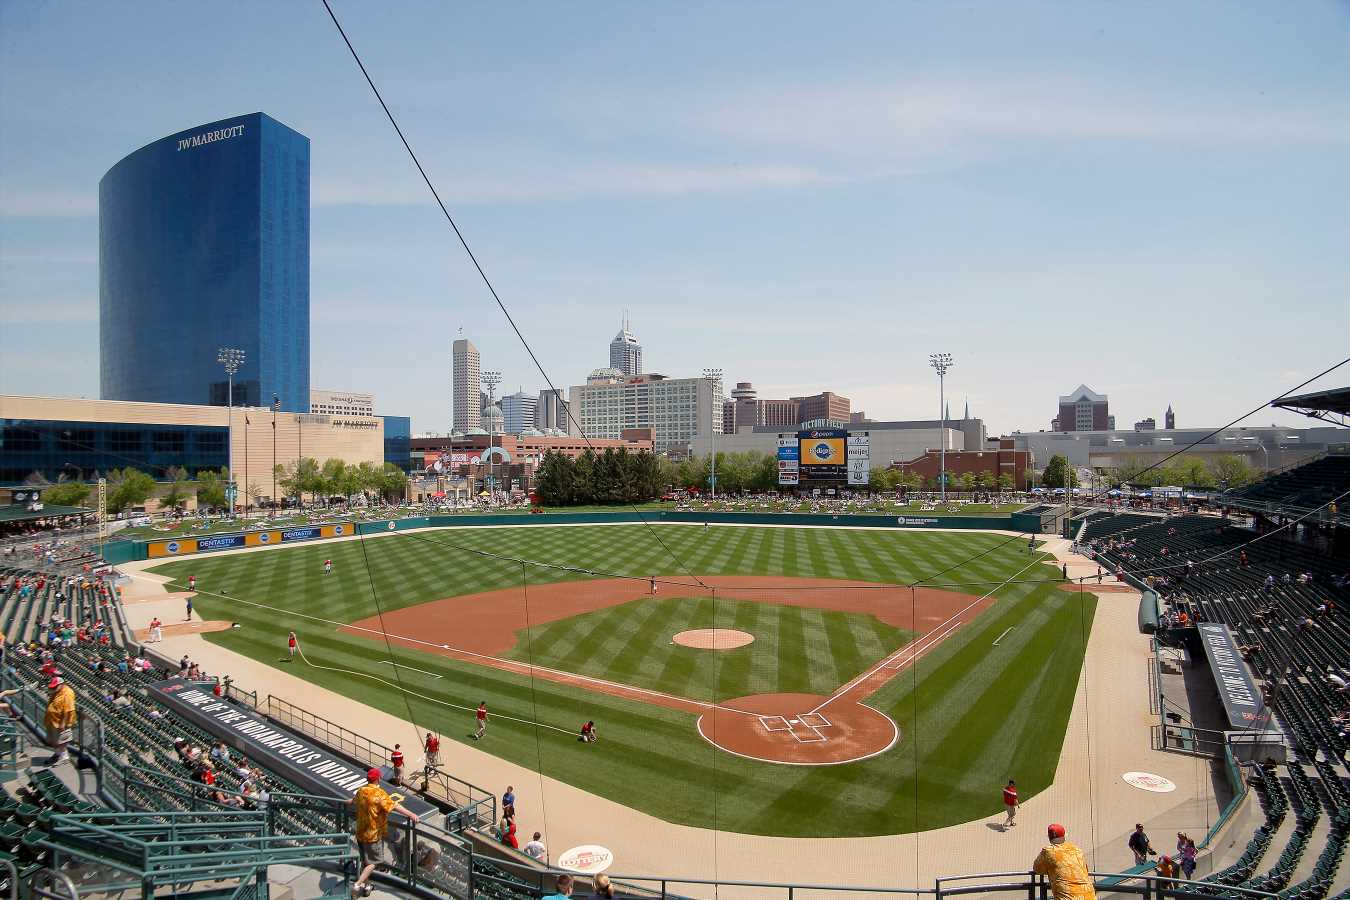 Child Hospitalized After Being Struck by Foul Ball at Minor League Baseball Game